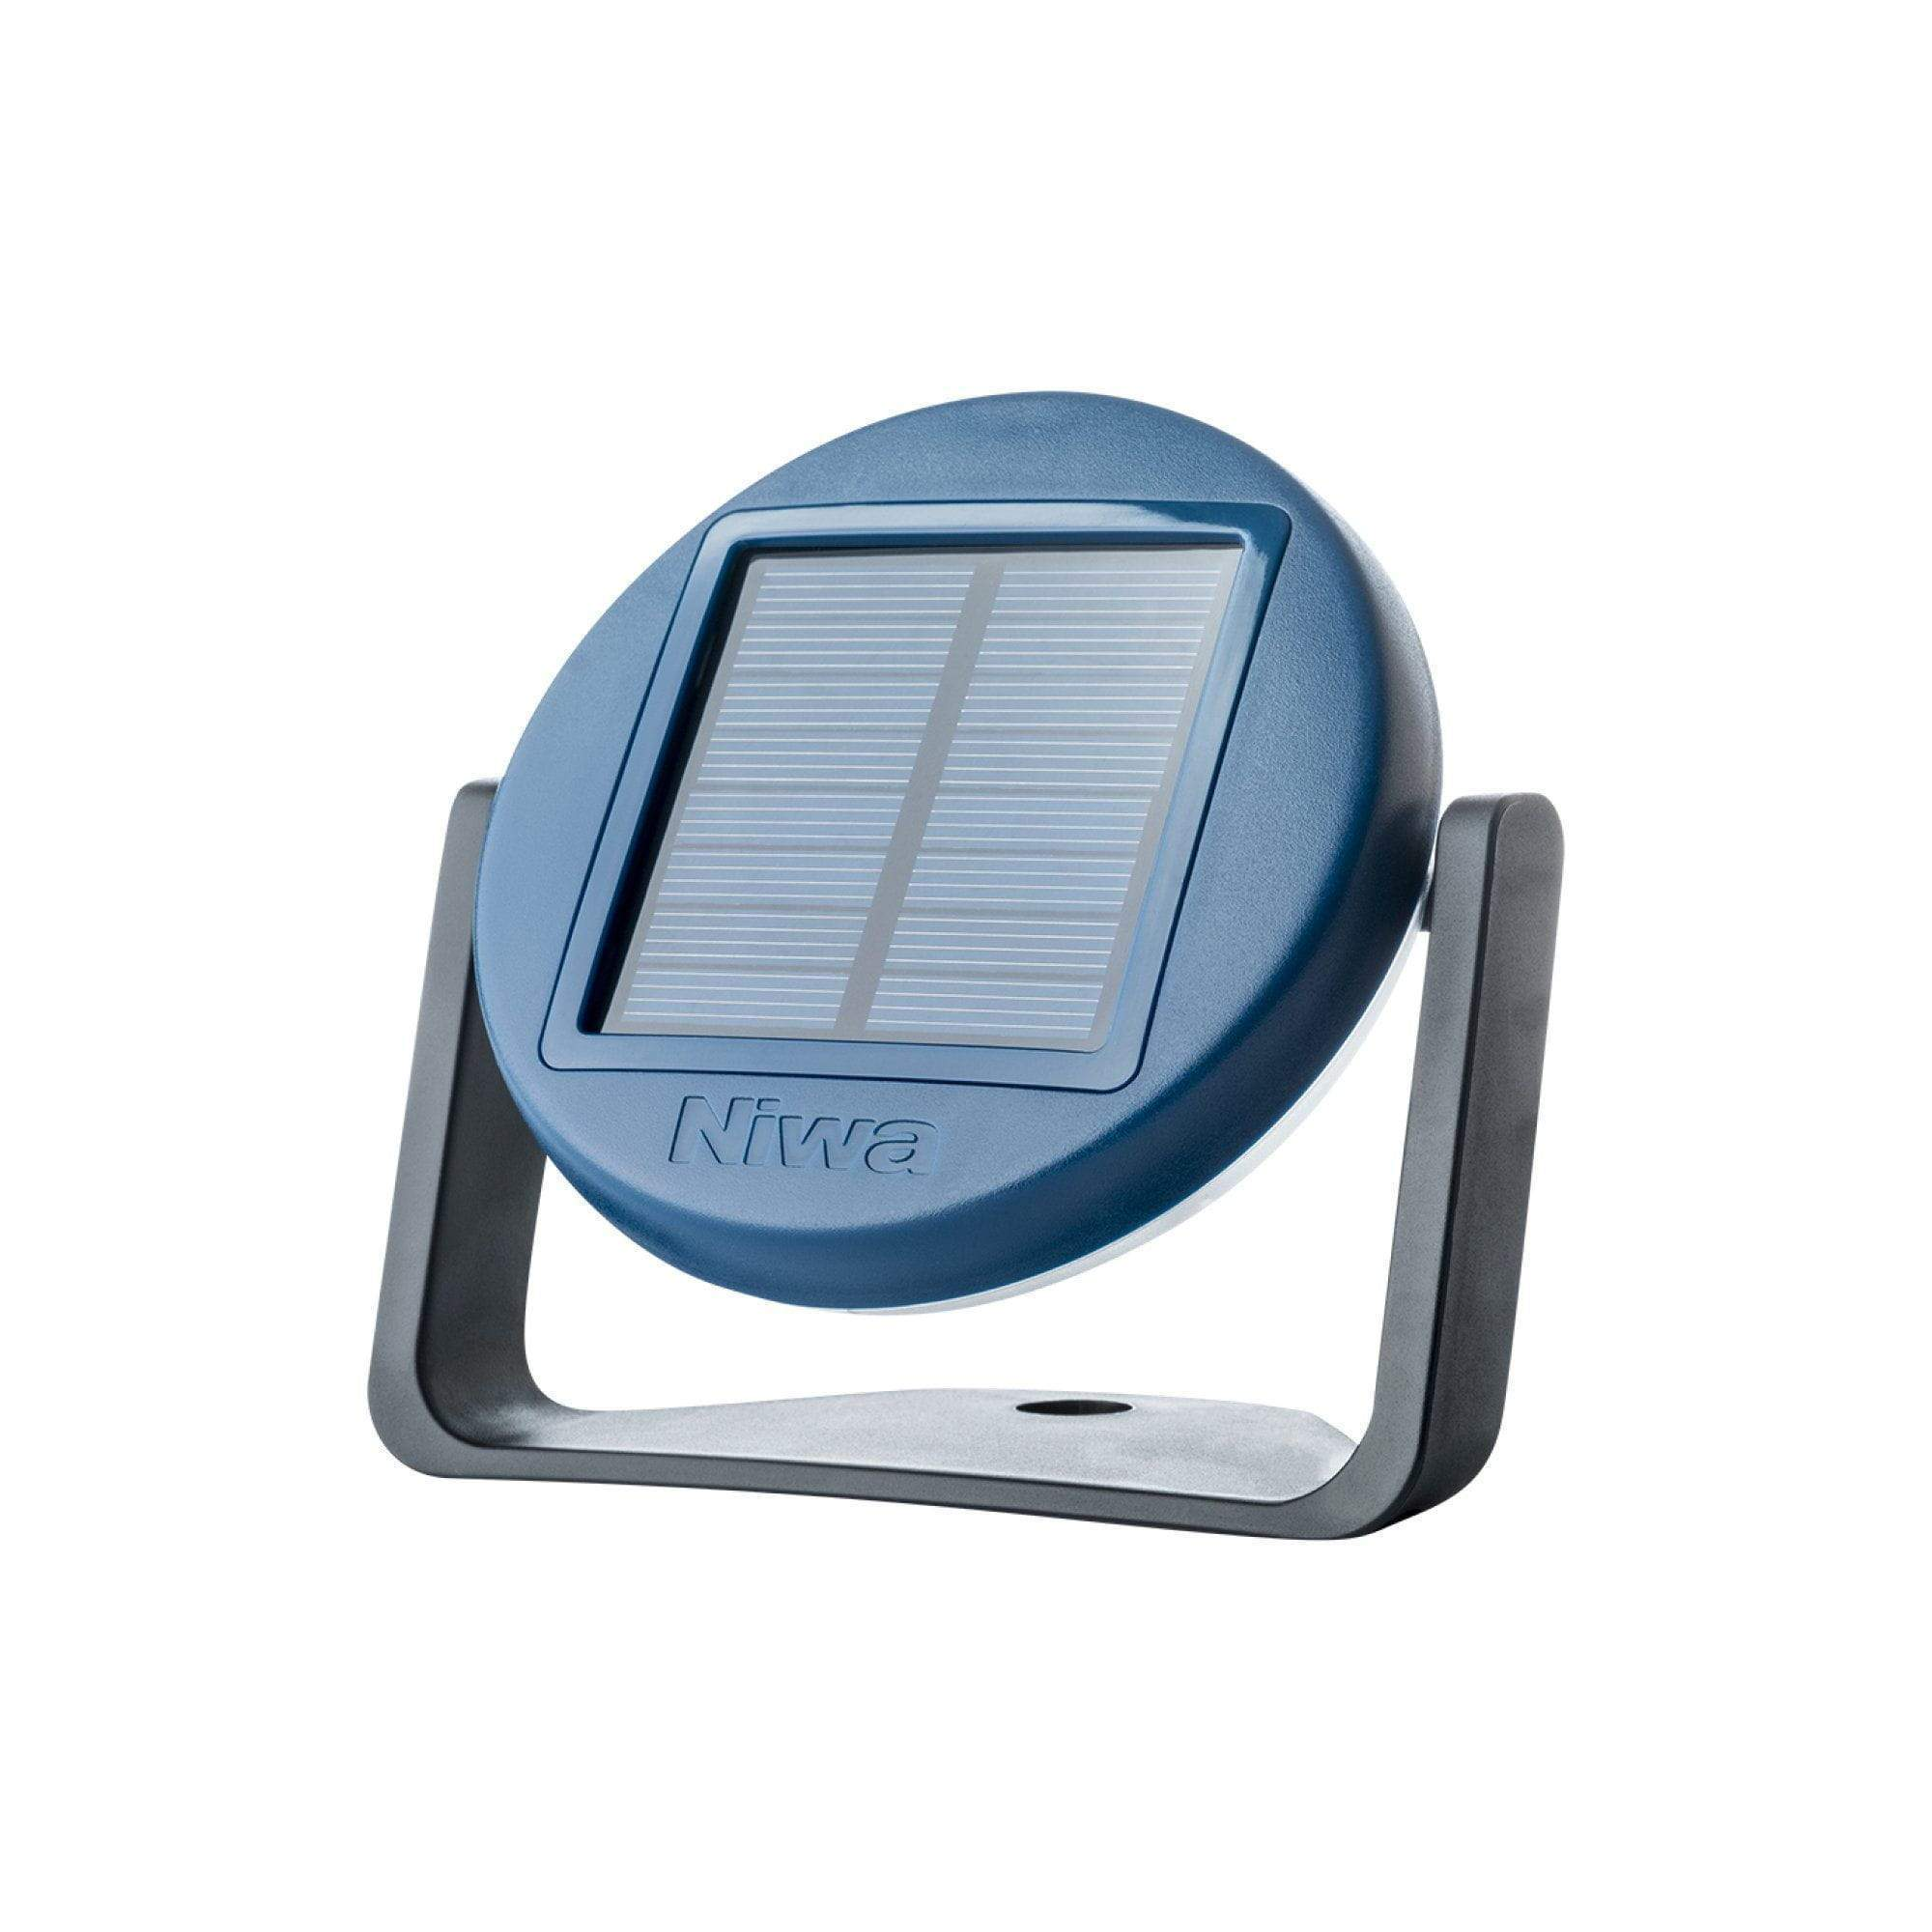 The Best Solar Lamps in 2021